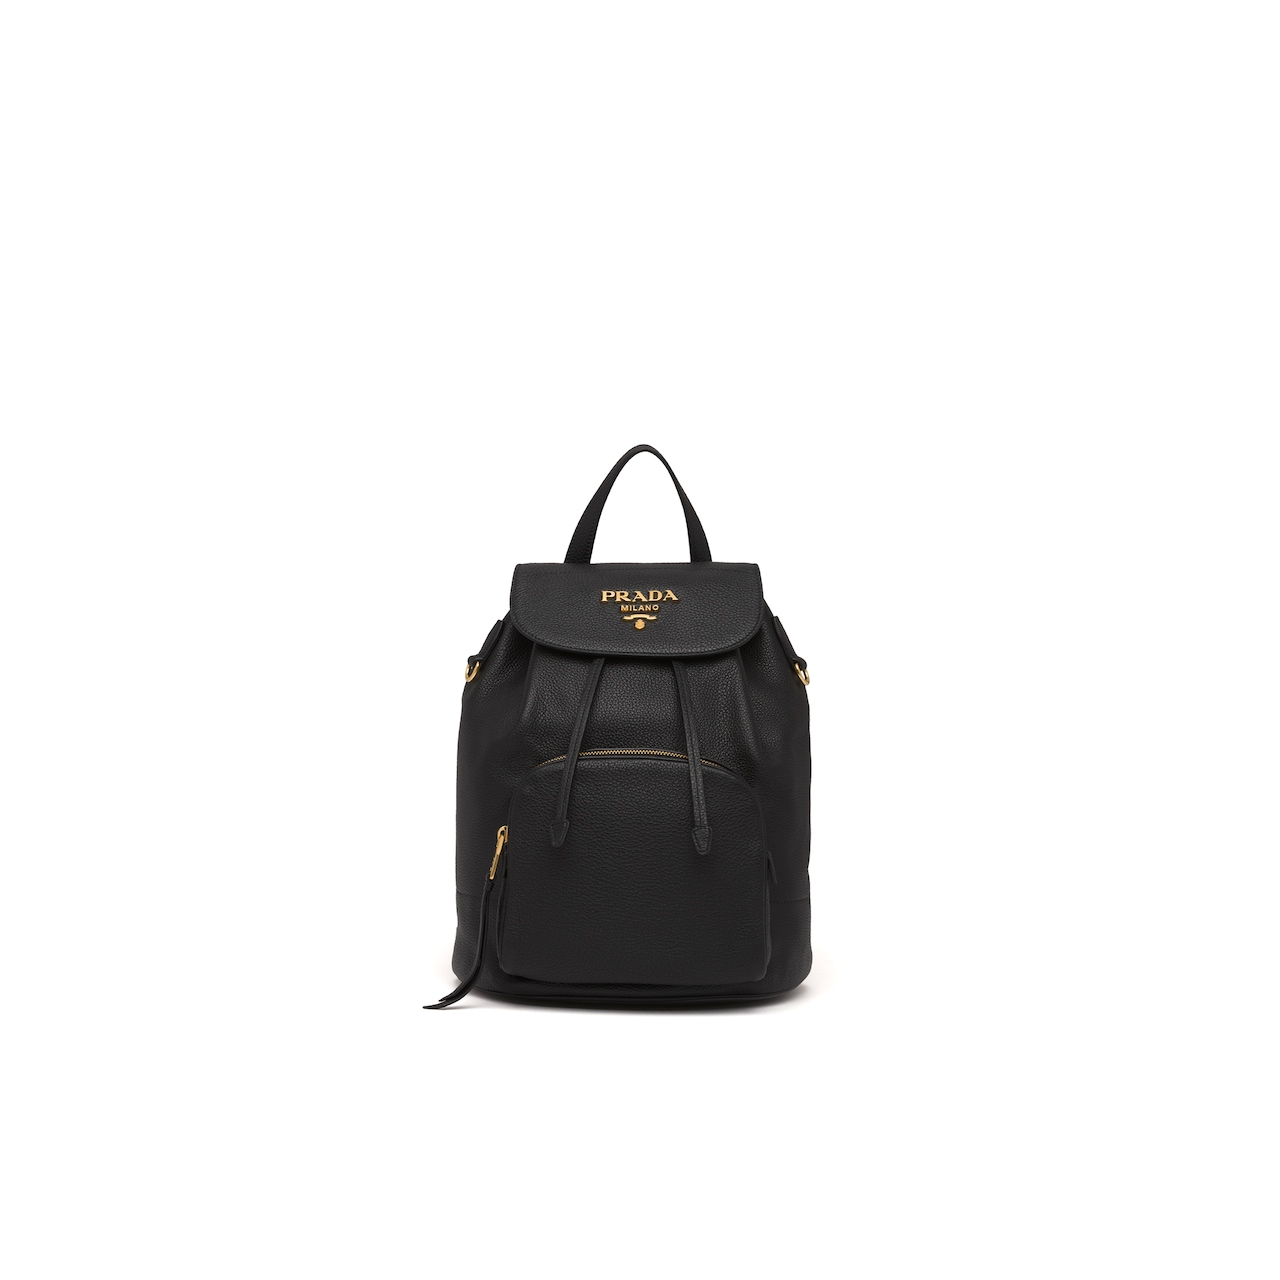 Prada Leather backpack 1